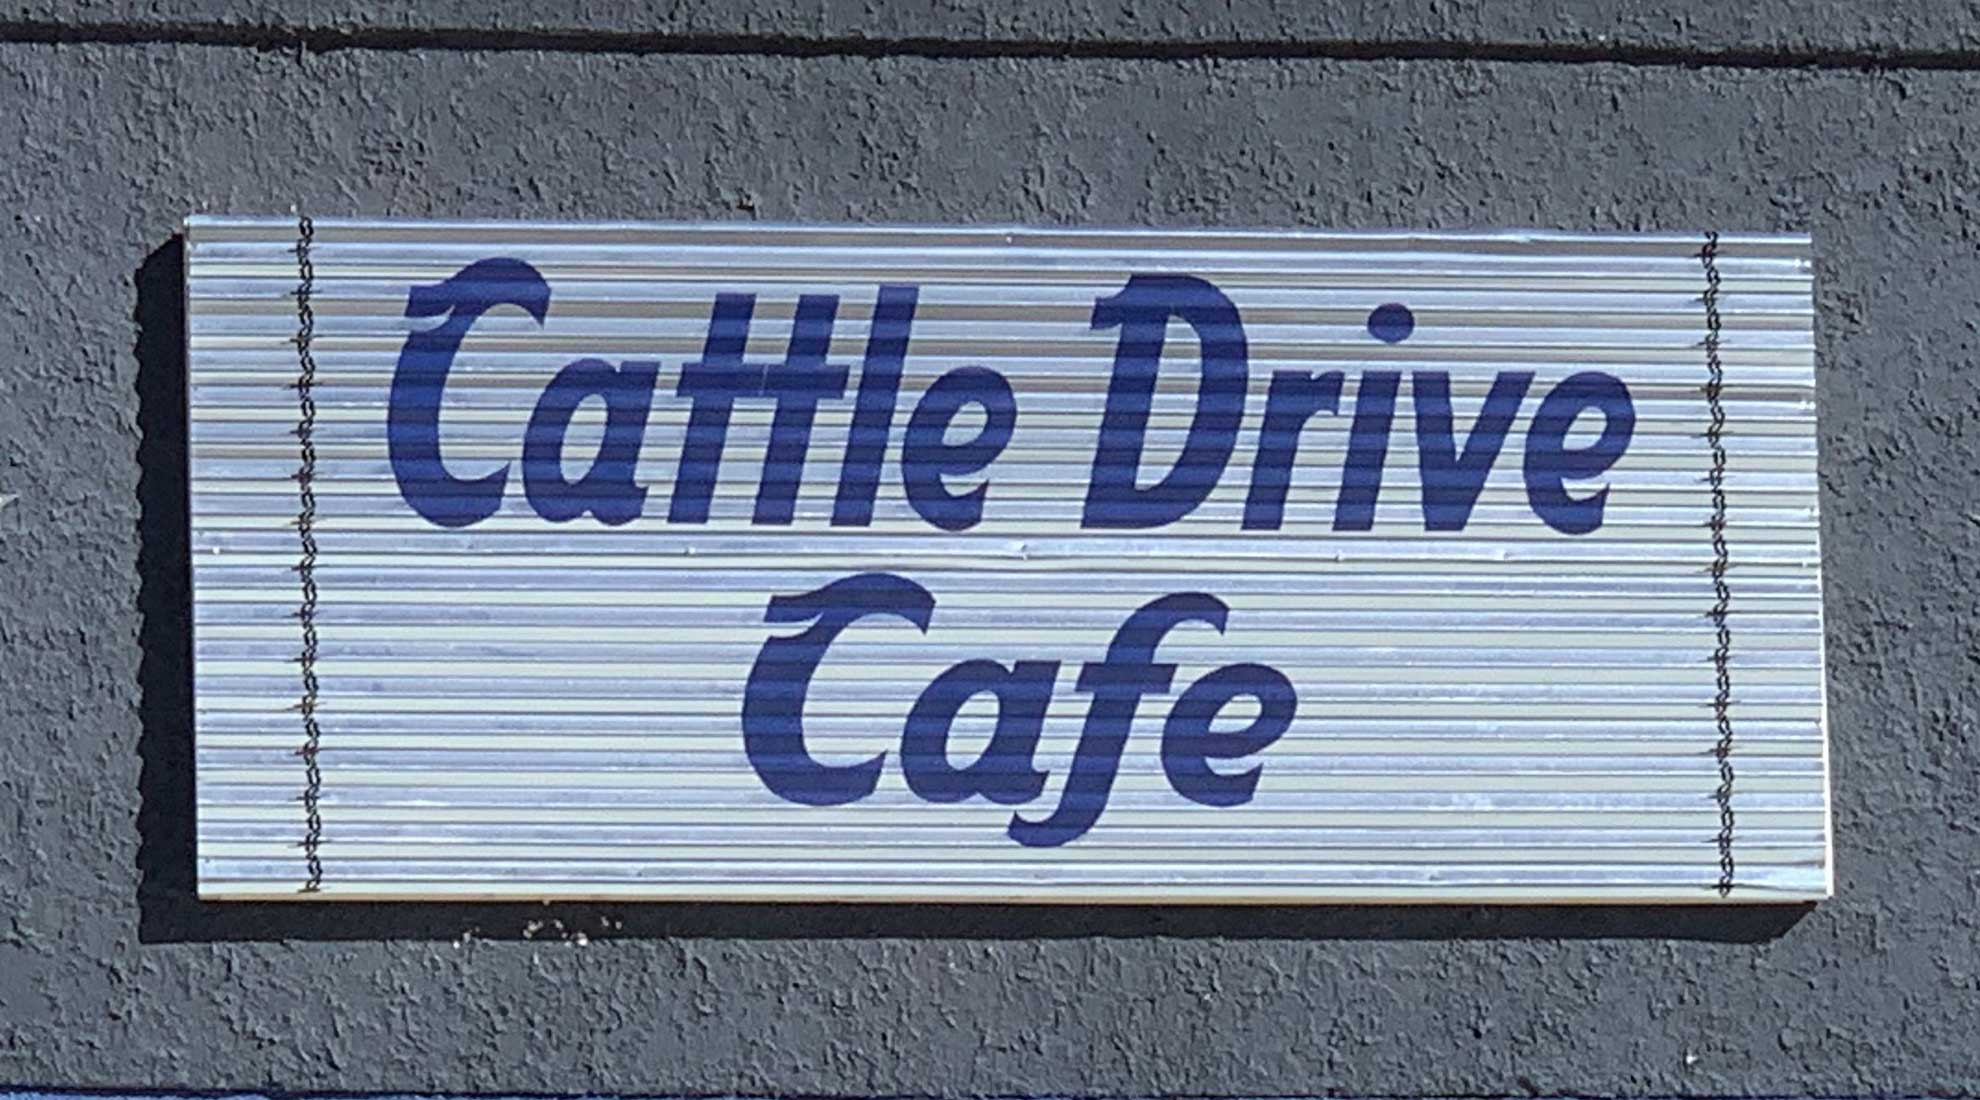 Cattle Drive Cafe Front Sign in Coleman, TX